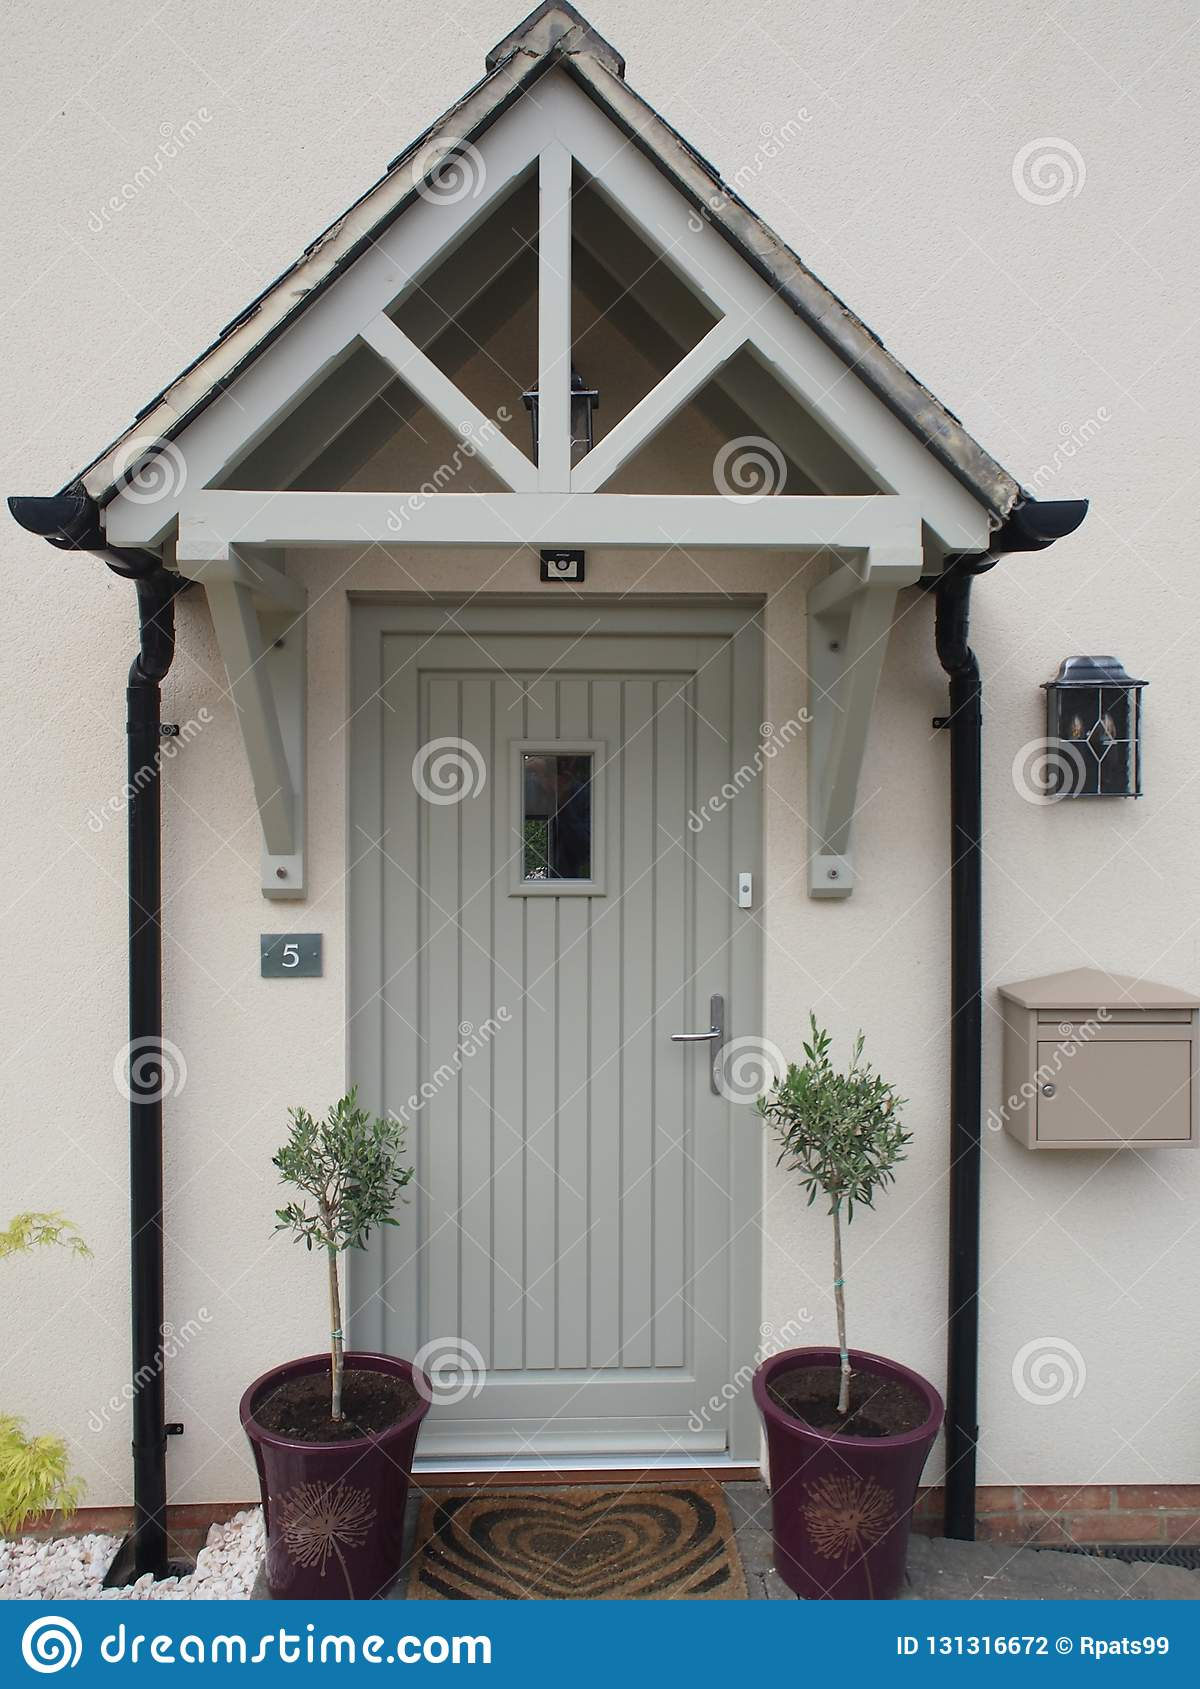 . House Front Door With Porch Stock Photo   Image of house  modern